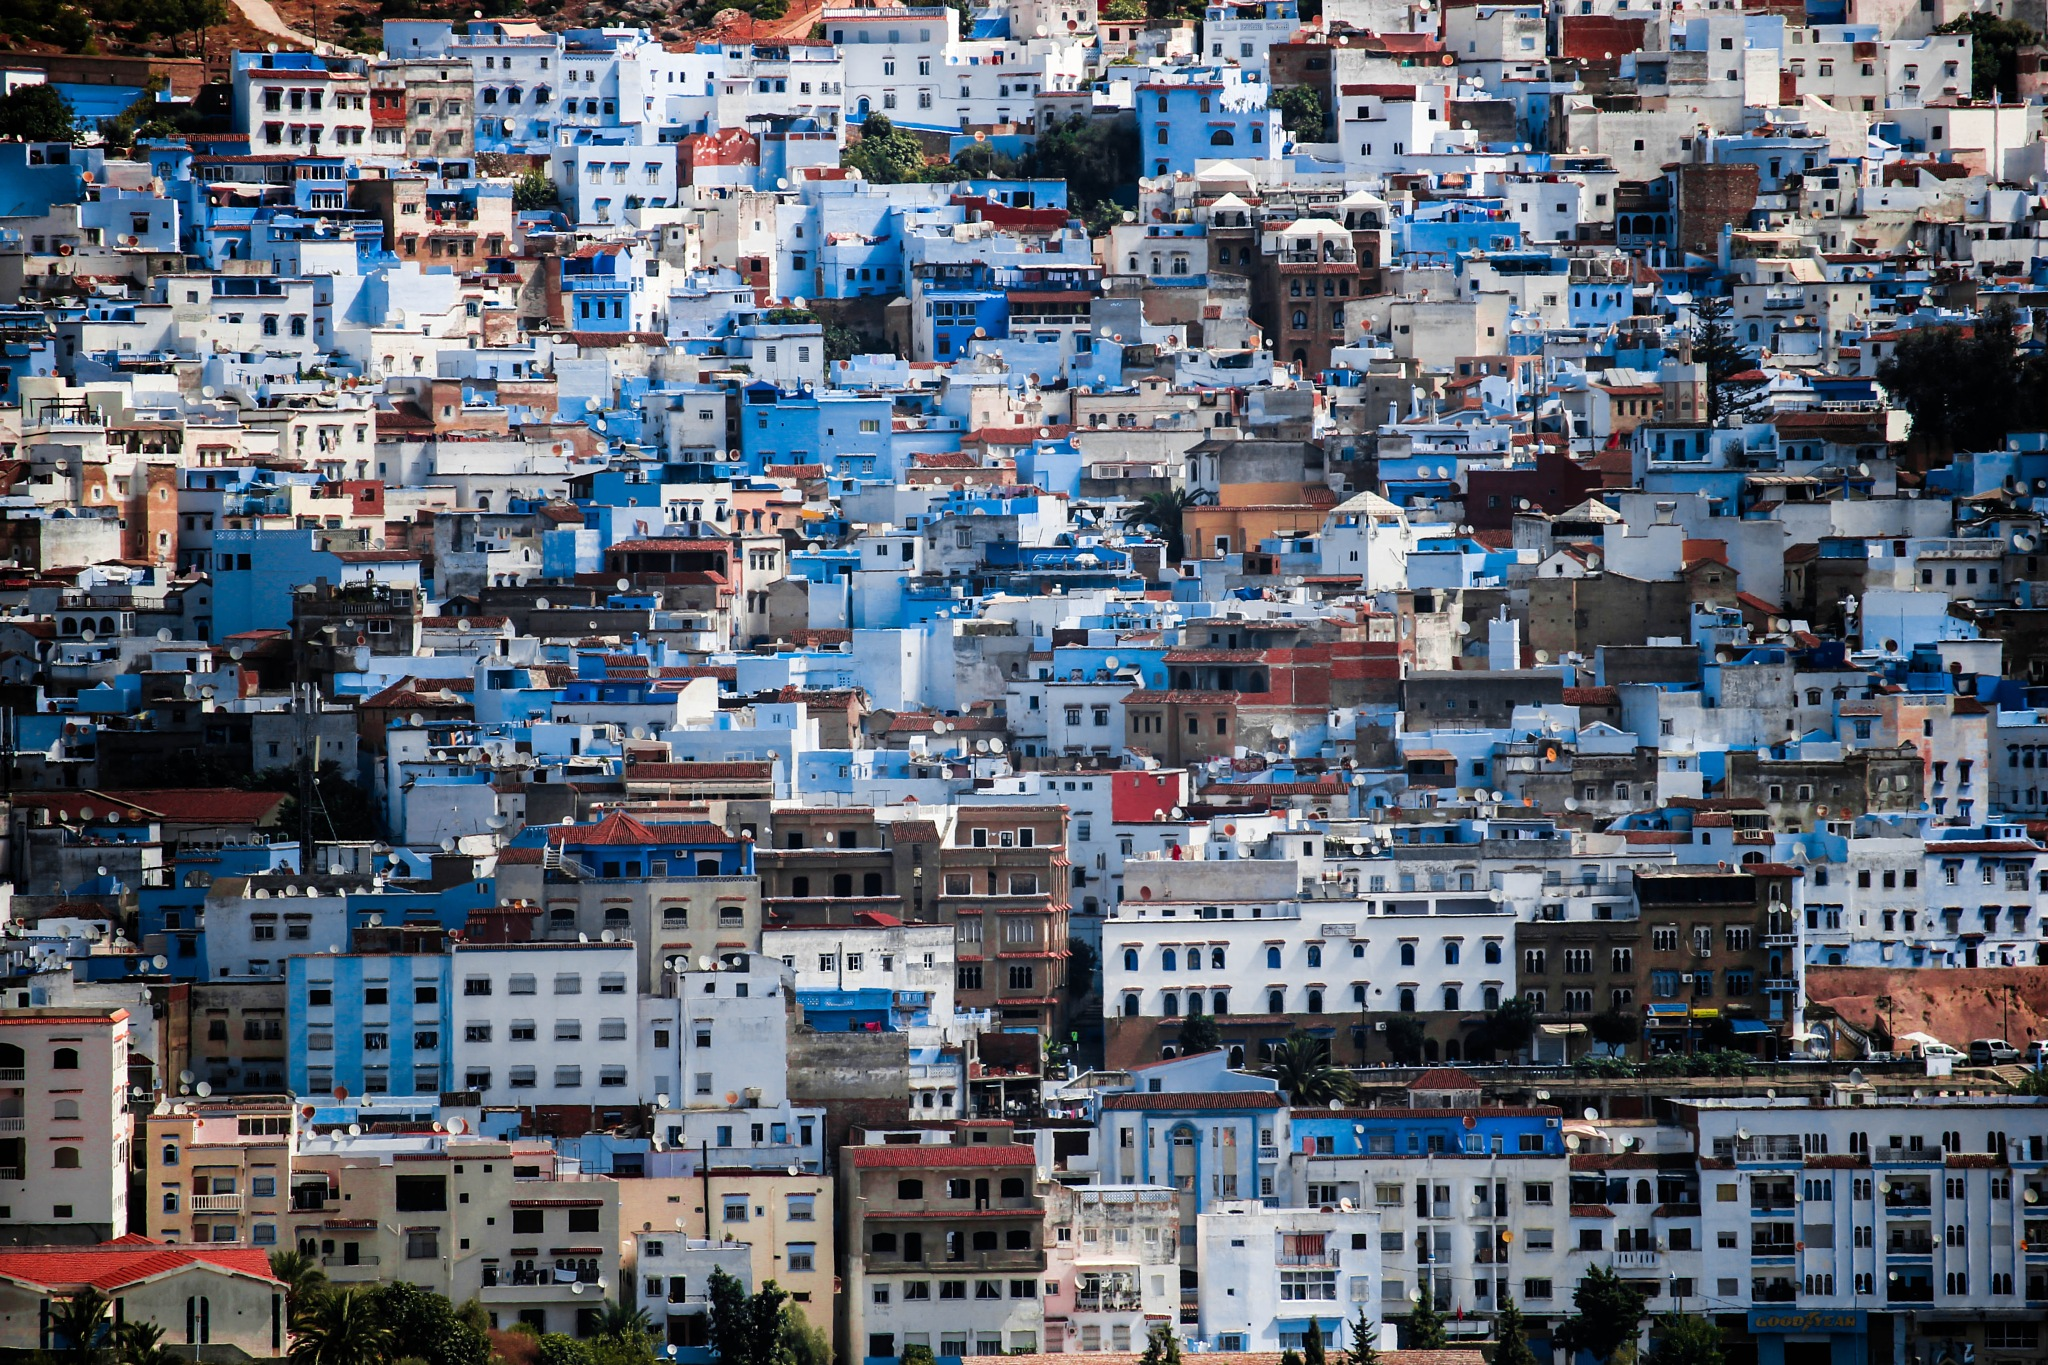 The Blue City Chefchaouen by Mohamed Zemmouri